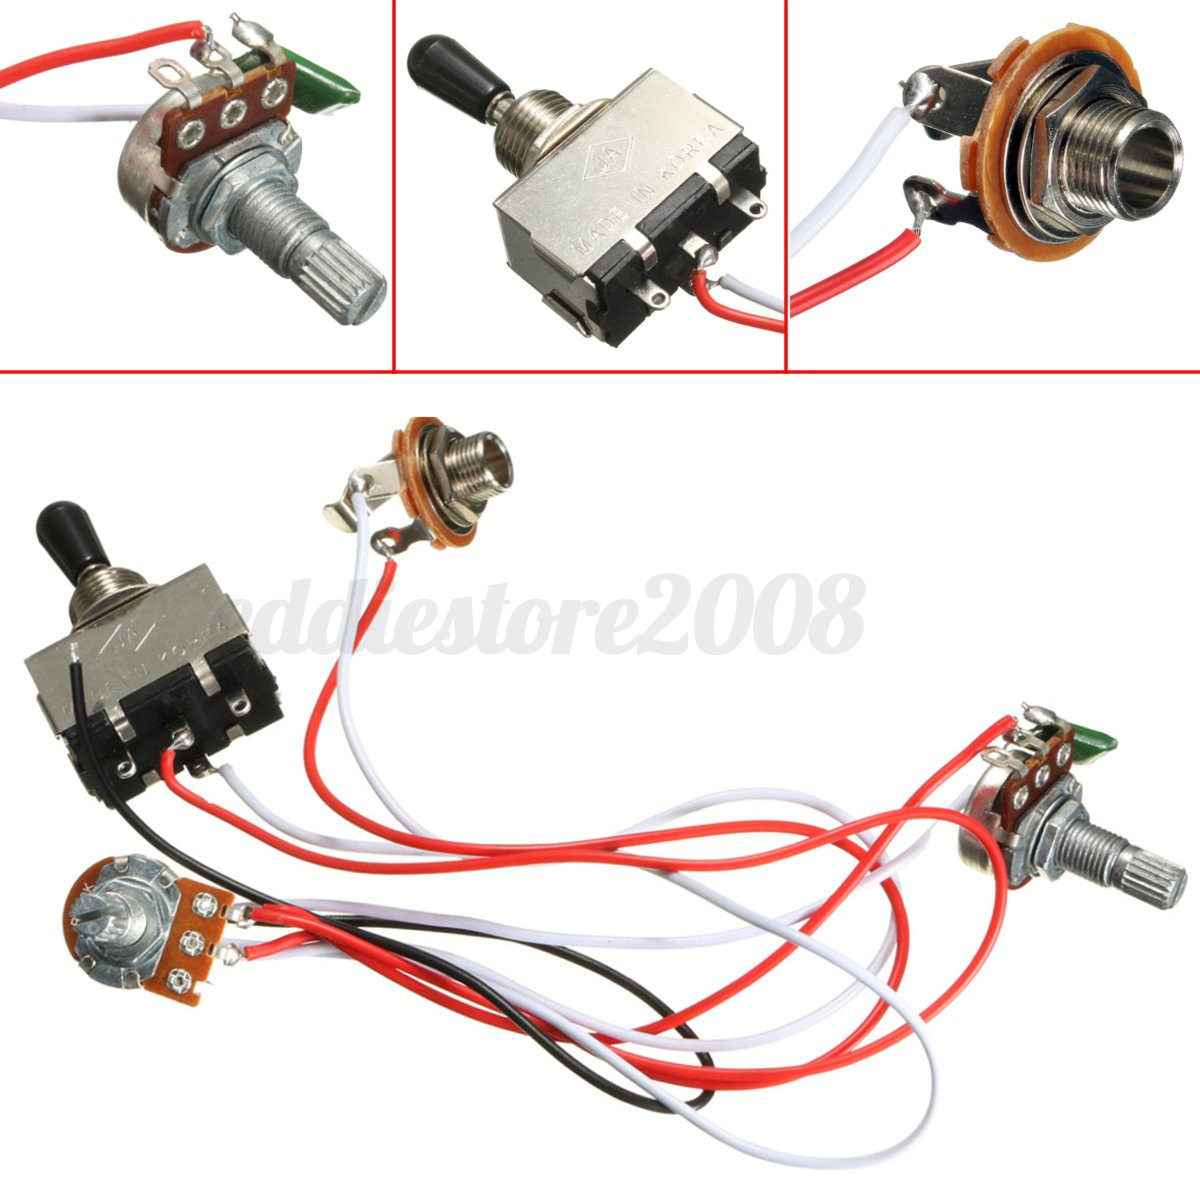 Electric Guitar Wiring Volume And Tone Diagrams Bass Speaker Diagram 3 Way Toggle Switch Harness Kit 1